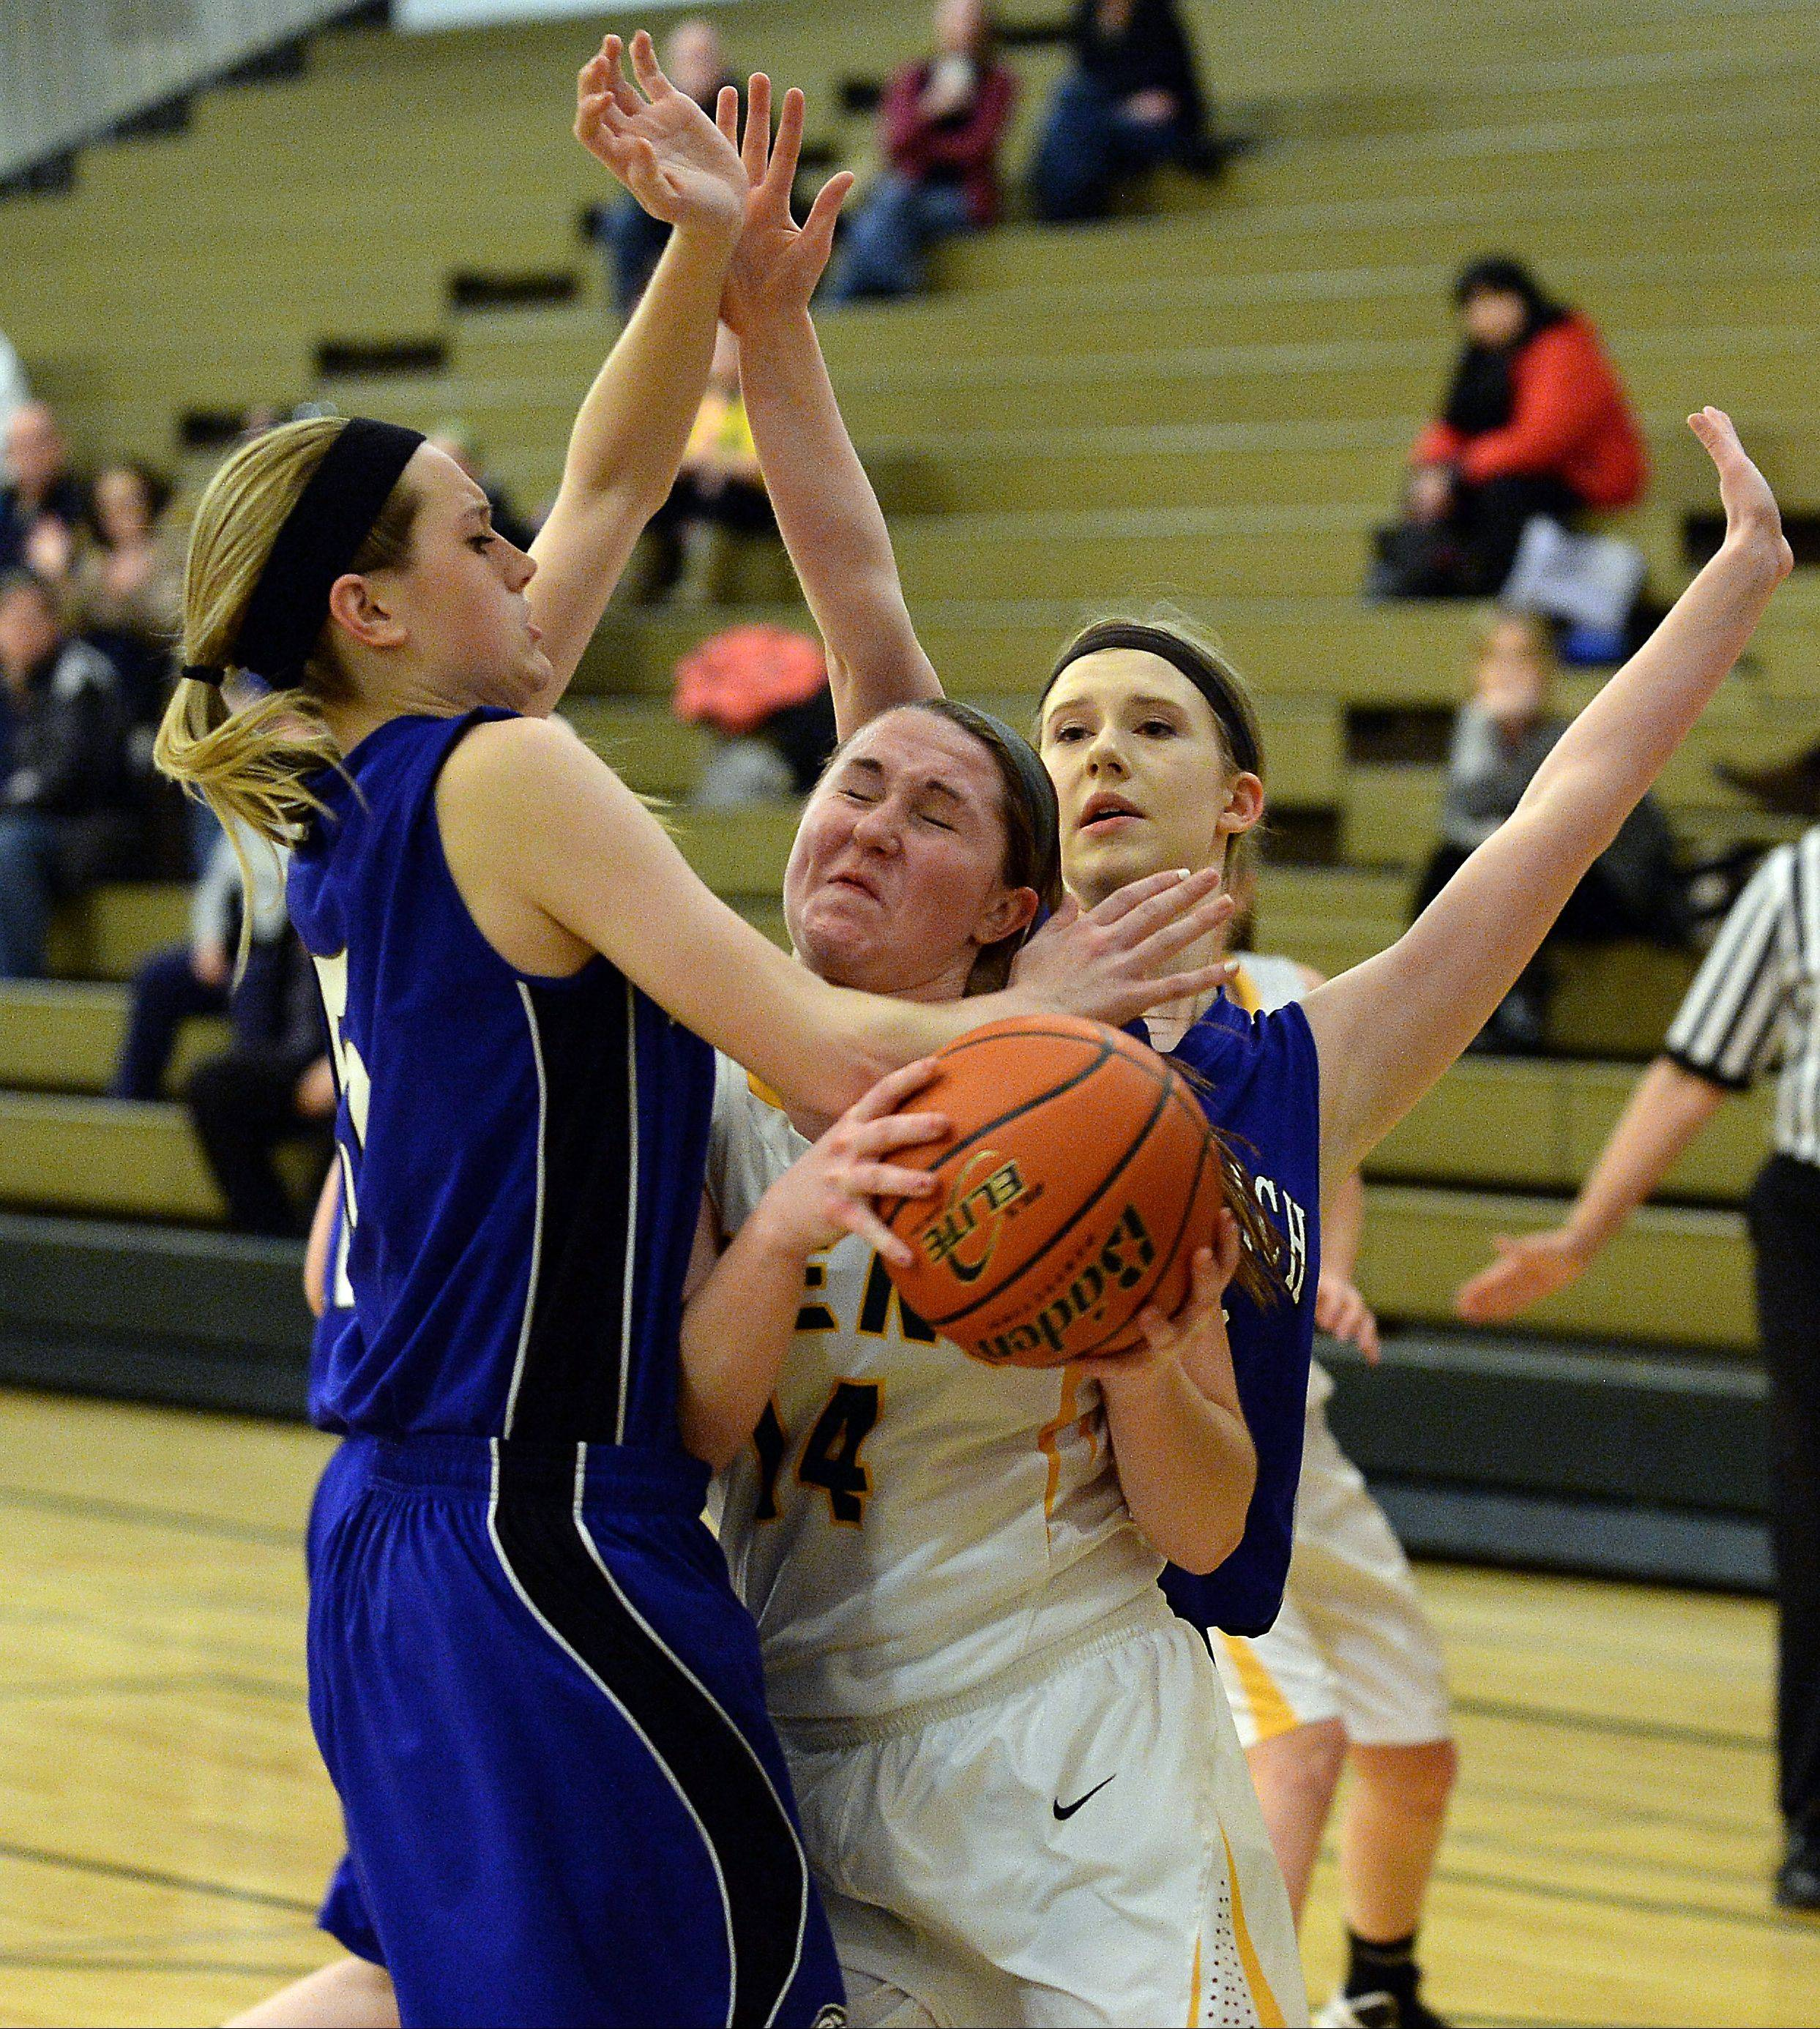 Lake Zurich's Elly Daleske fouls Elk Grove's Taylor Brown as she drives for the basket Thursday at Elk Grove.